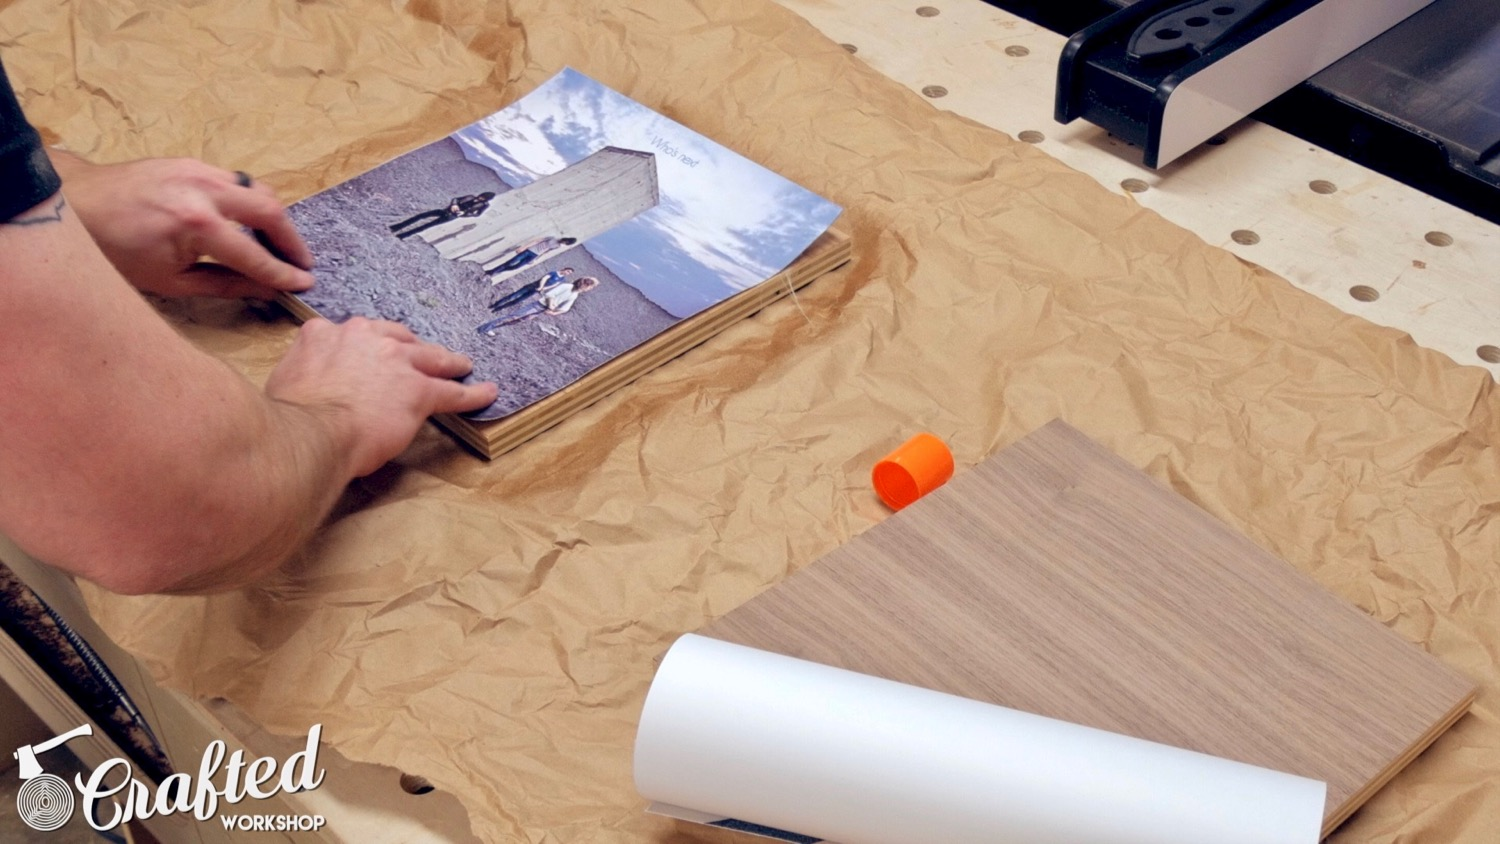 attaching album art to plywood with spray adhesive